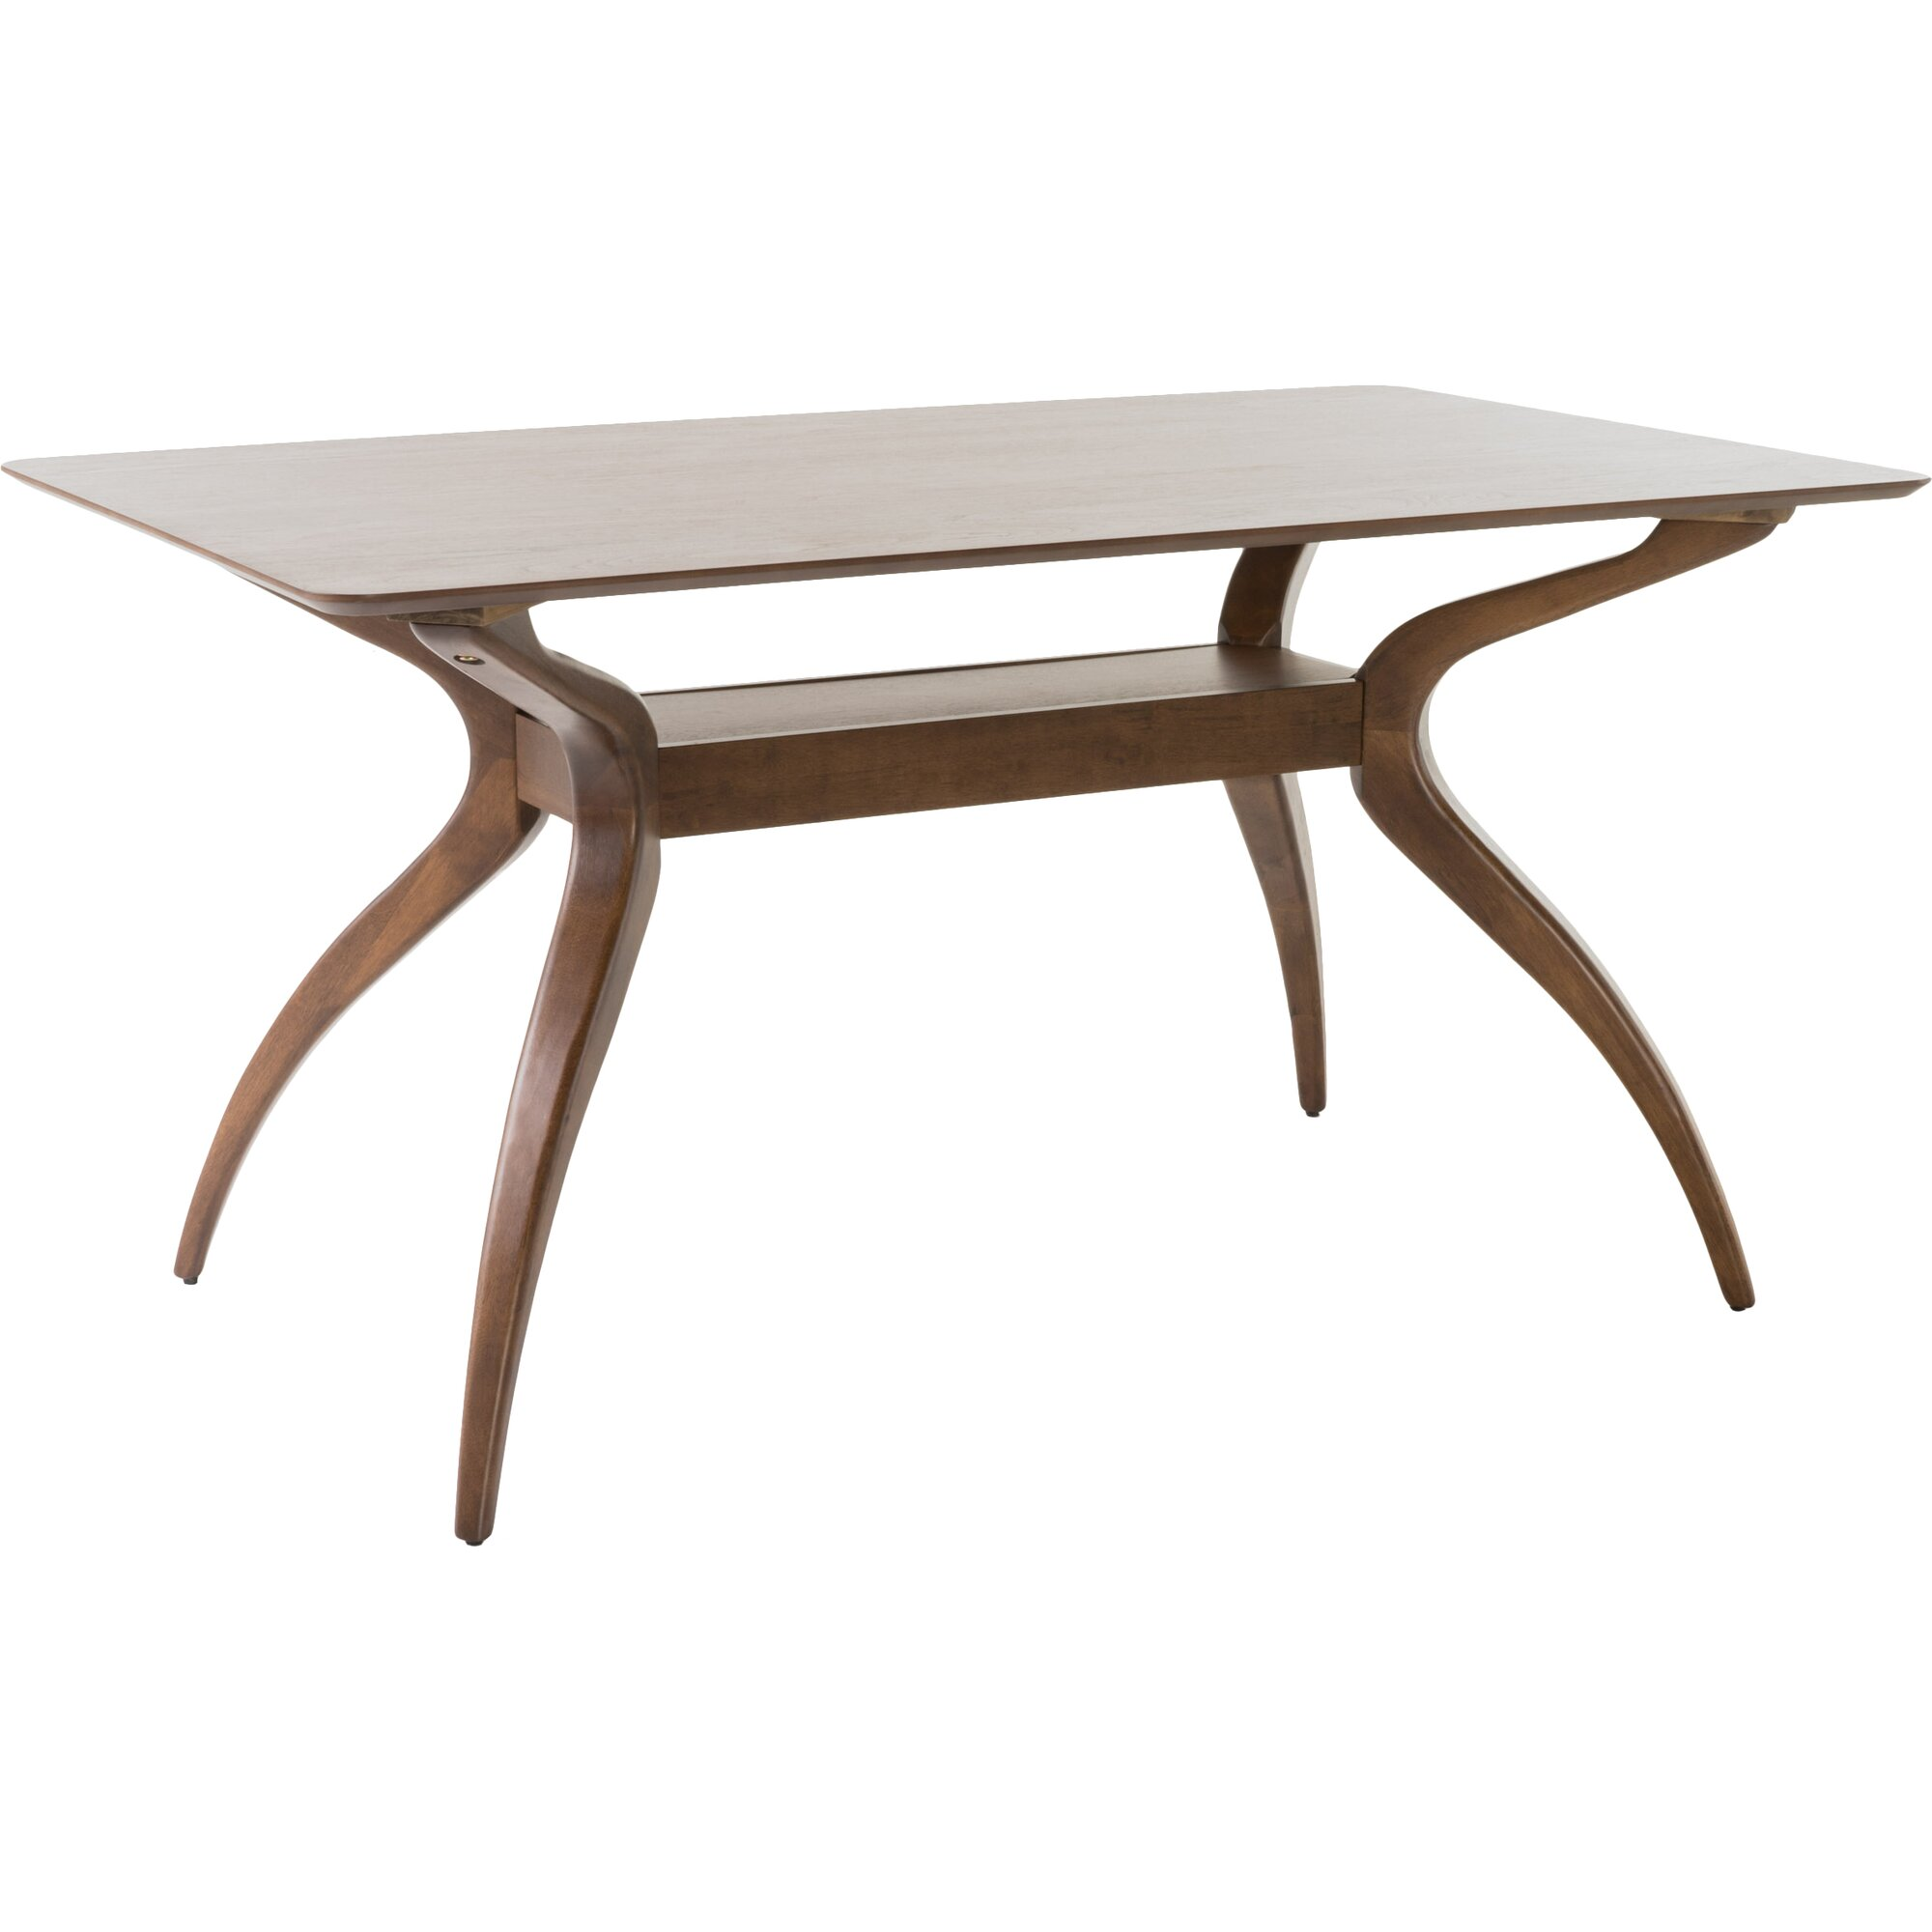 Paterson dining table reviews allmodern for Regulation 85 table a